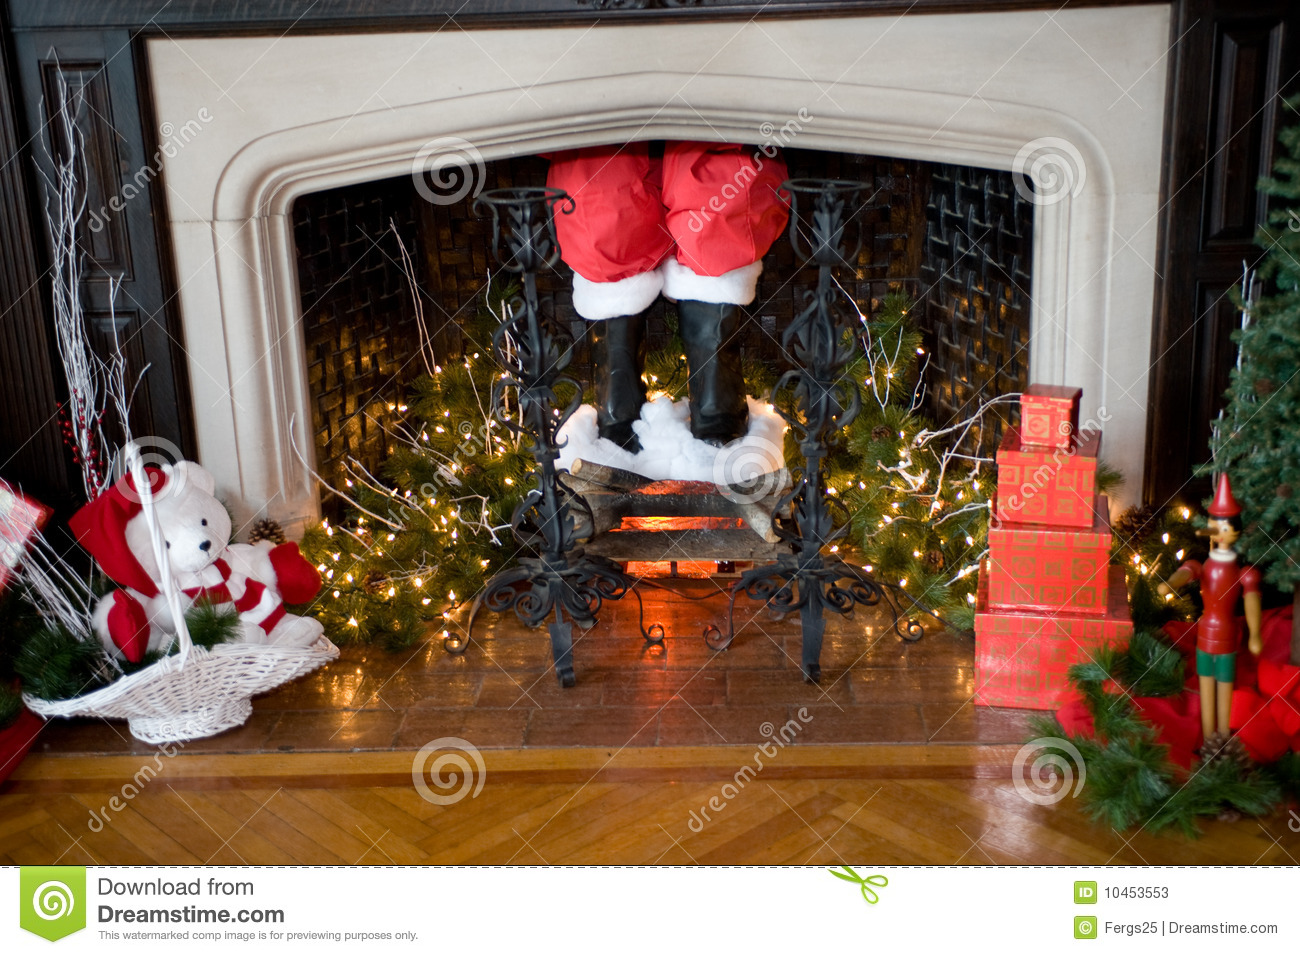 Christmas Decorations stock image. Image of pants, gifts ...